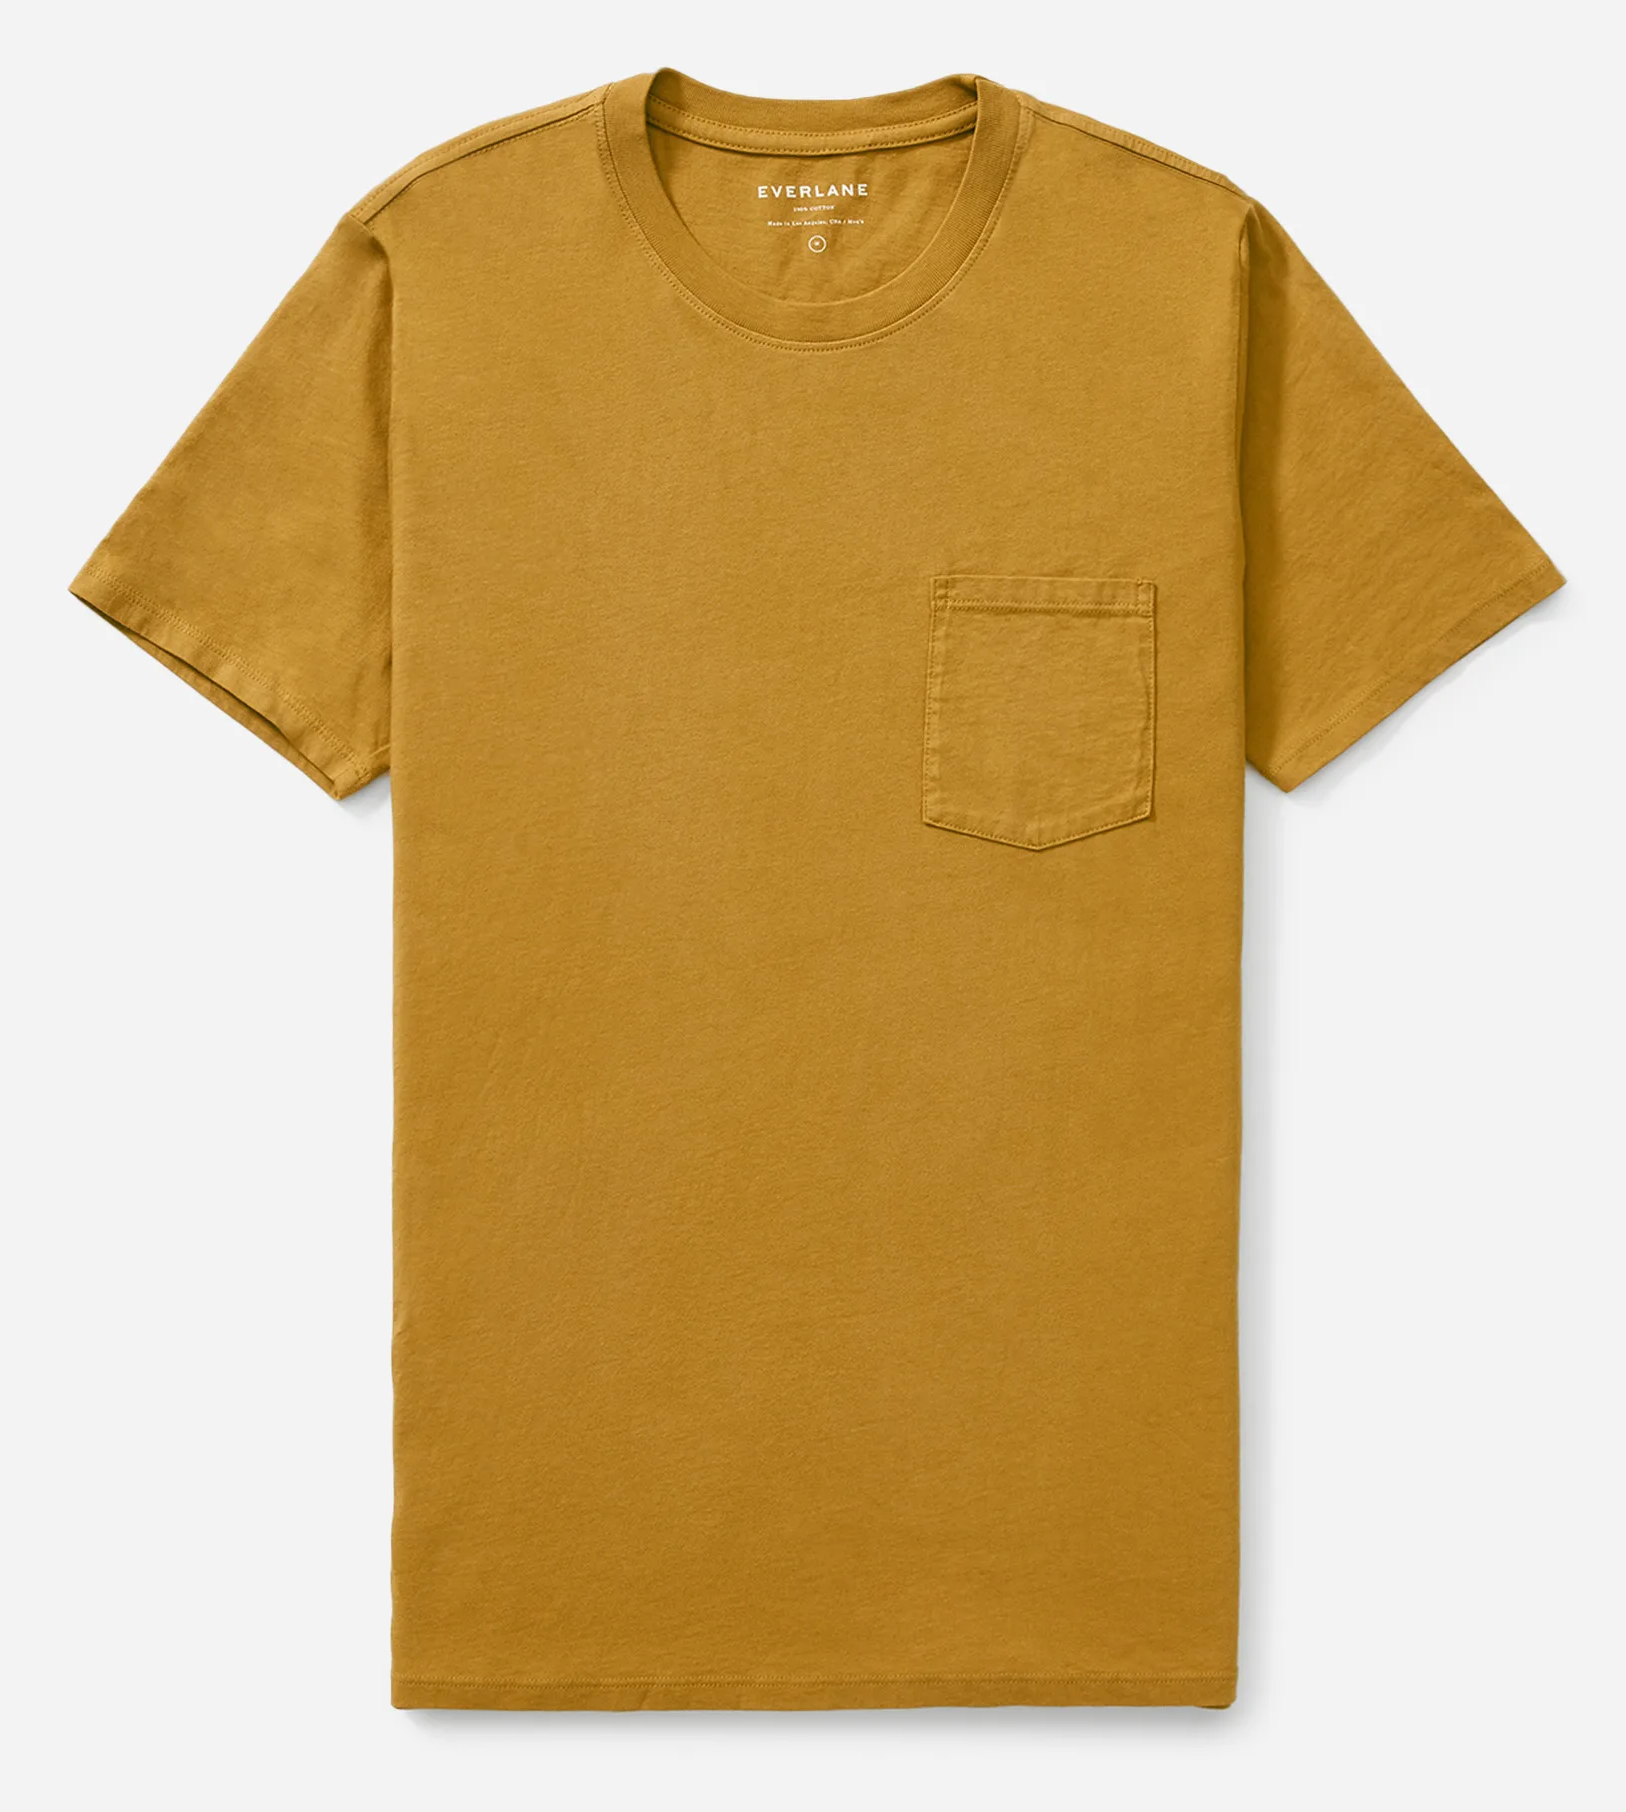 A brass-color Everlane pocket T-shirt